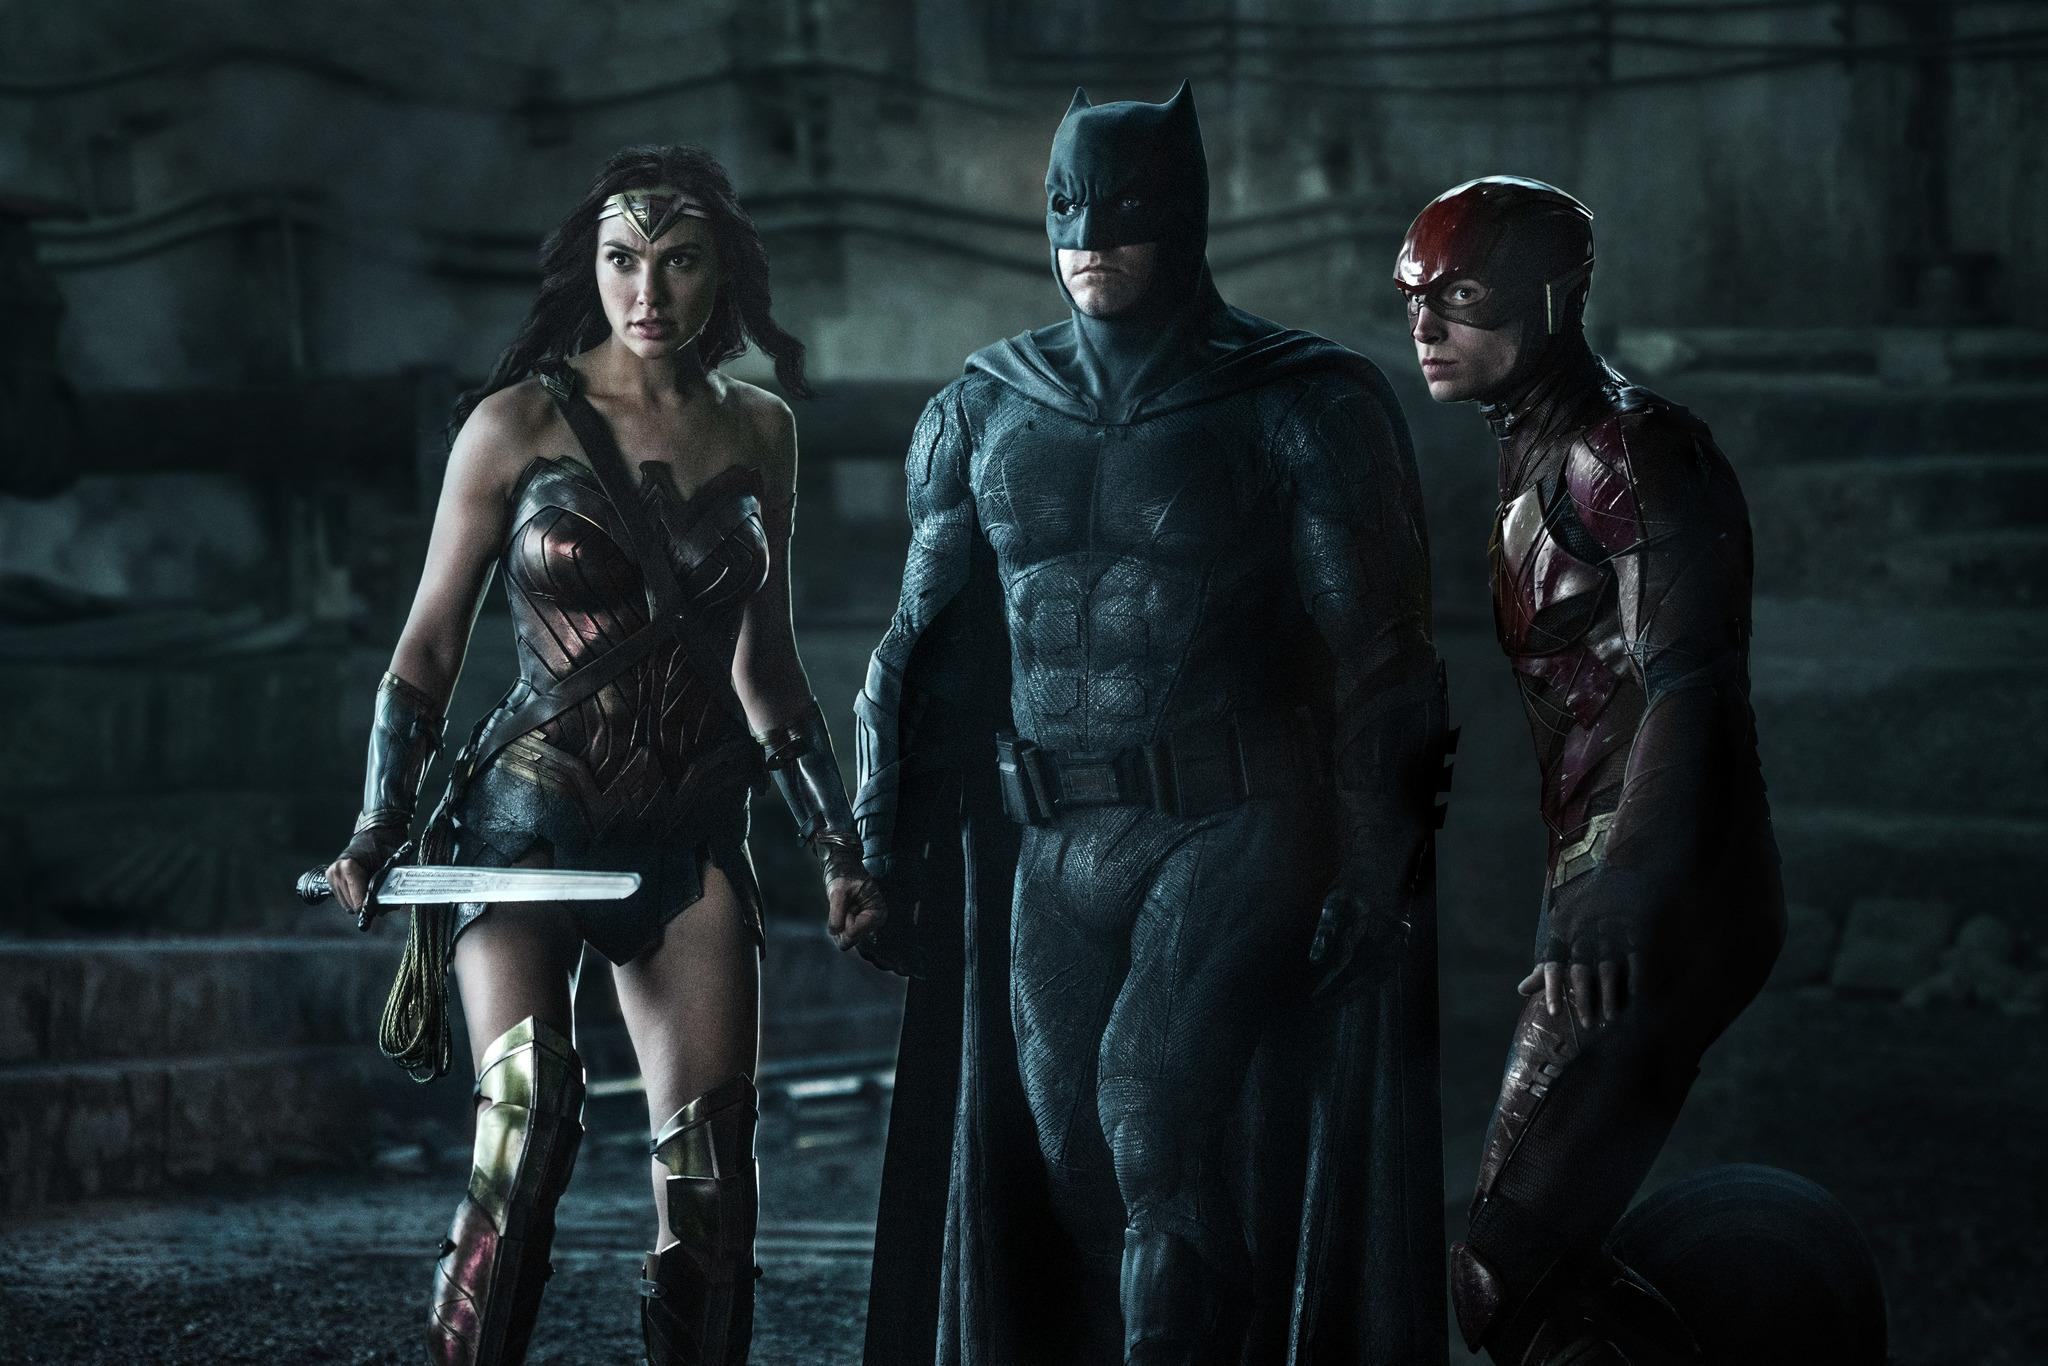 The Justice League unite to save the world from danger